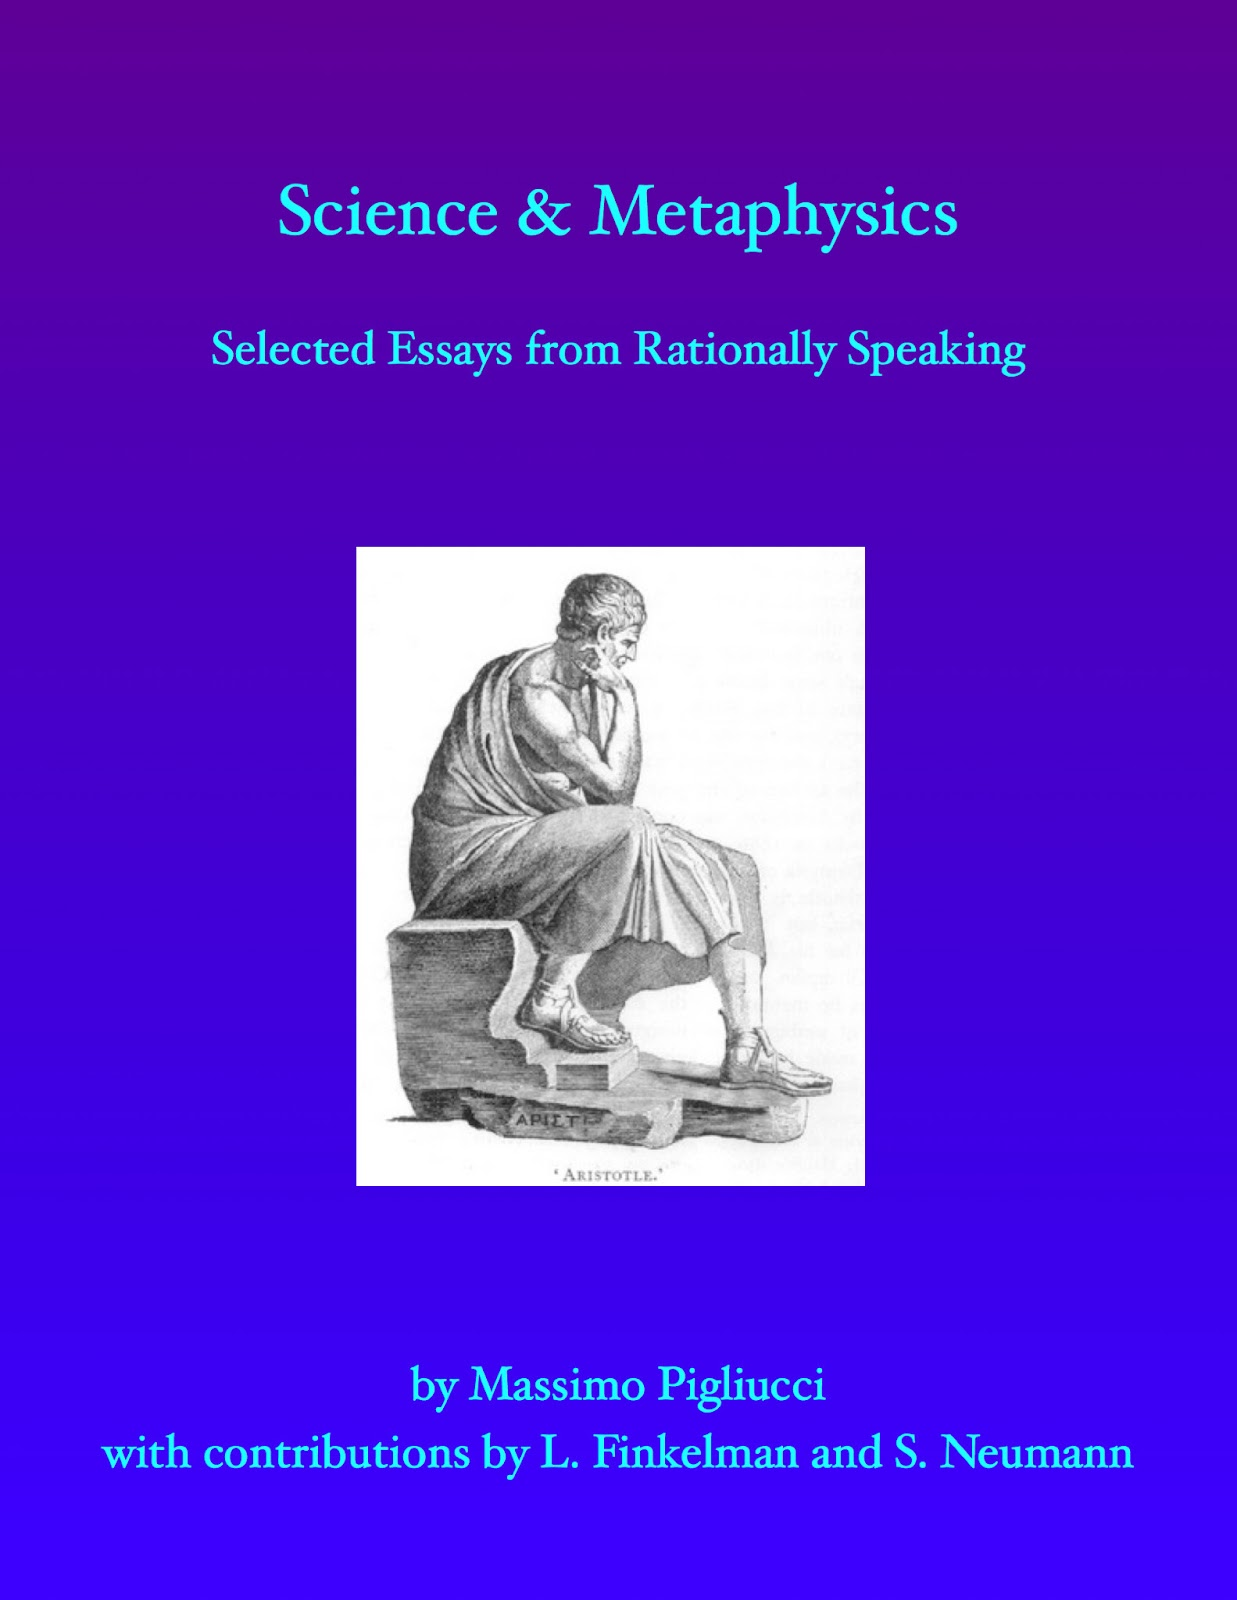 essay about metaphysics Metaphysics essay - metaphysics metaphysics is the philosophical study whose object is to determine the real nature of things to determine the meaning, structure and.